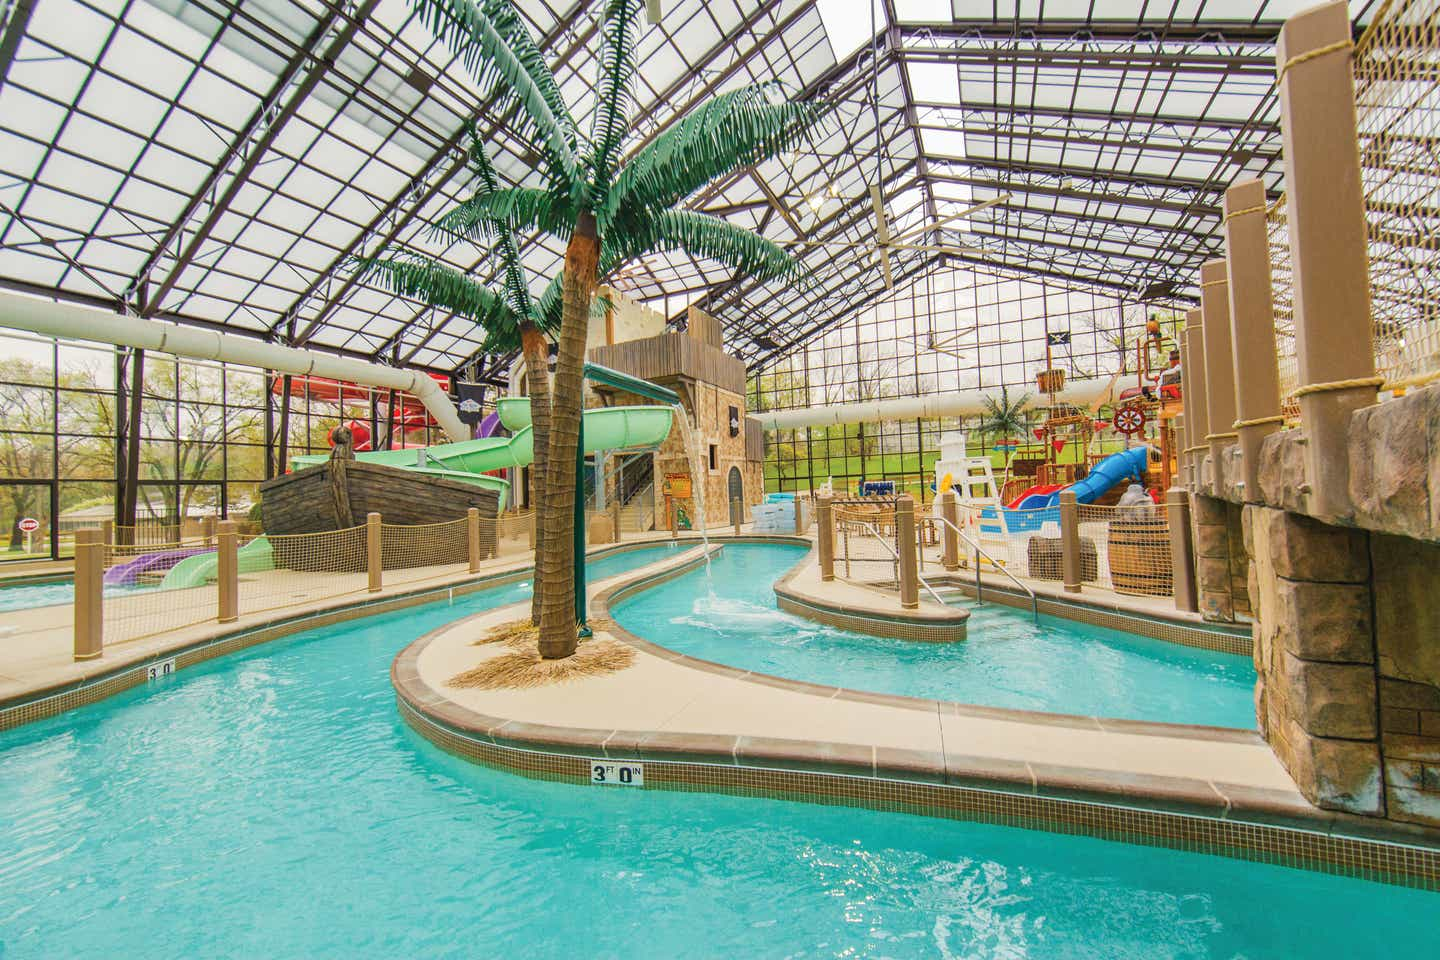 Indoor lazy river and water feature at Pirate's Cay Water Park at Fox River Resort in Sheridan, Illinois